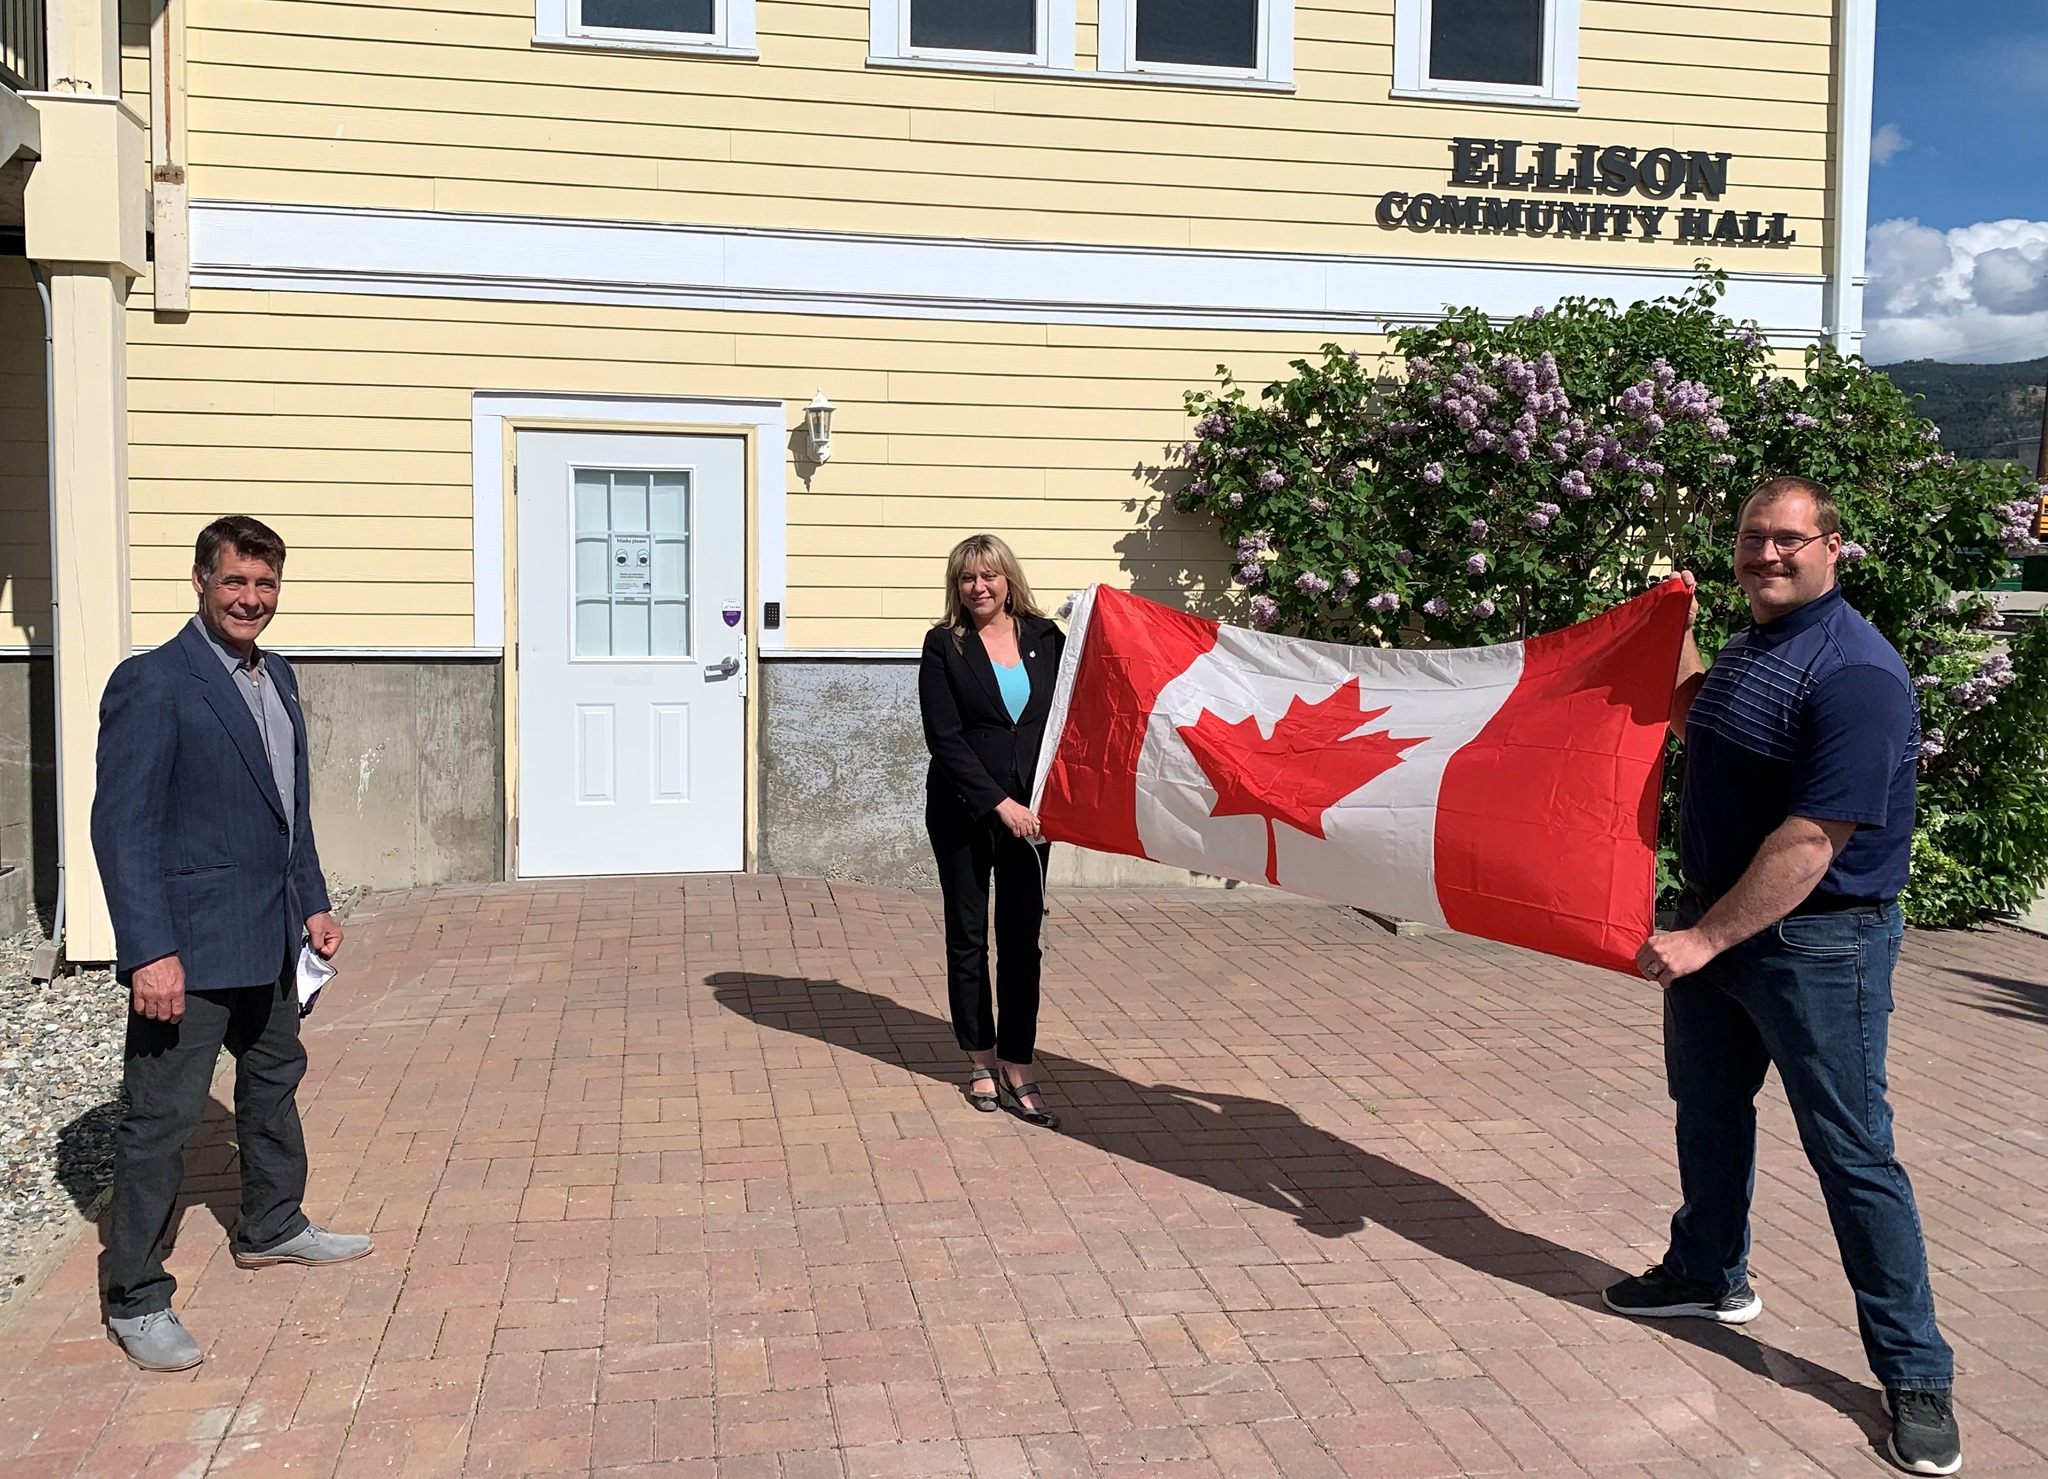 Delivering a Canada Flag to the Ellison Community Hall